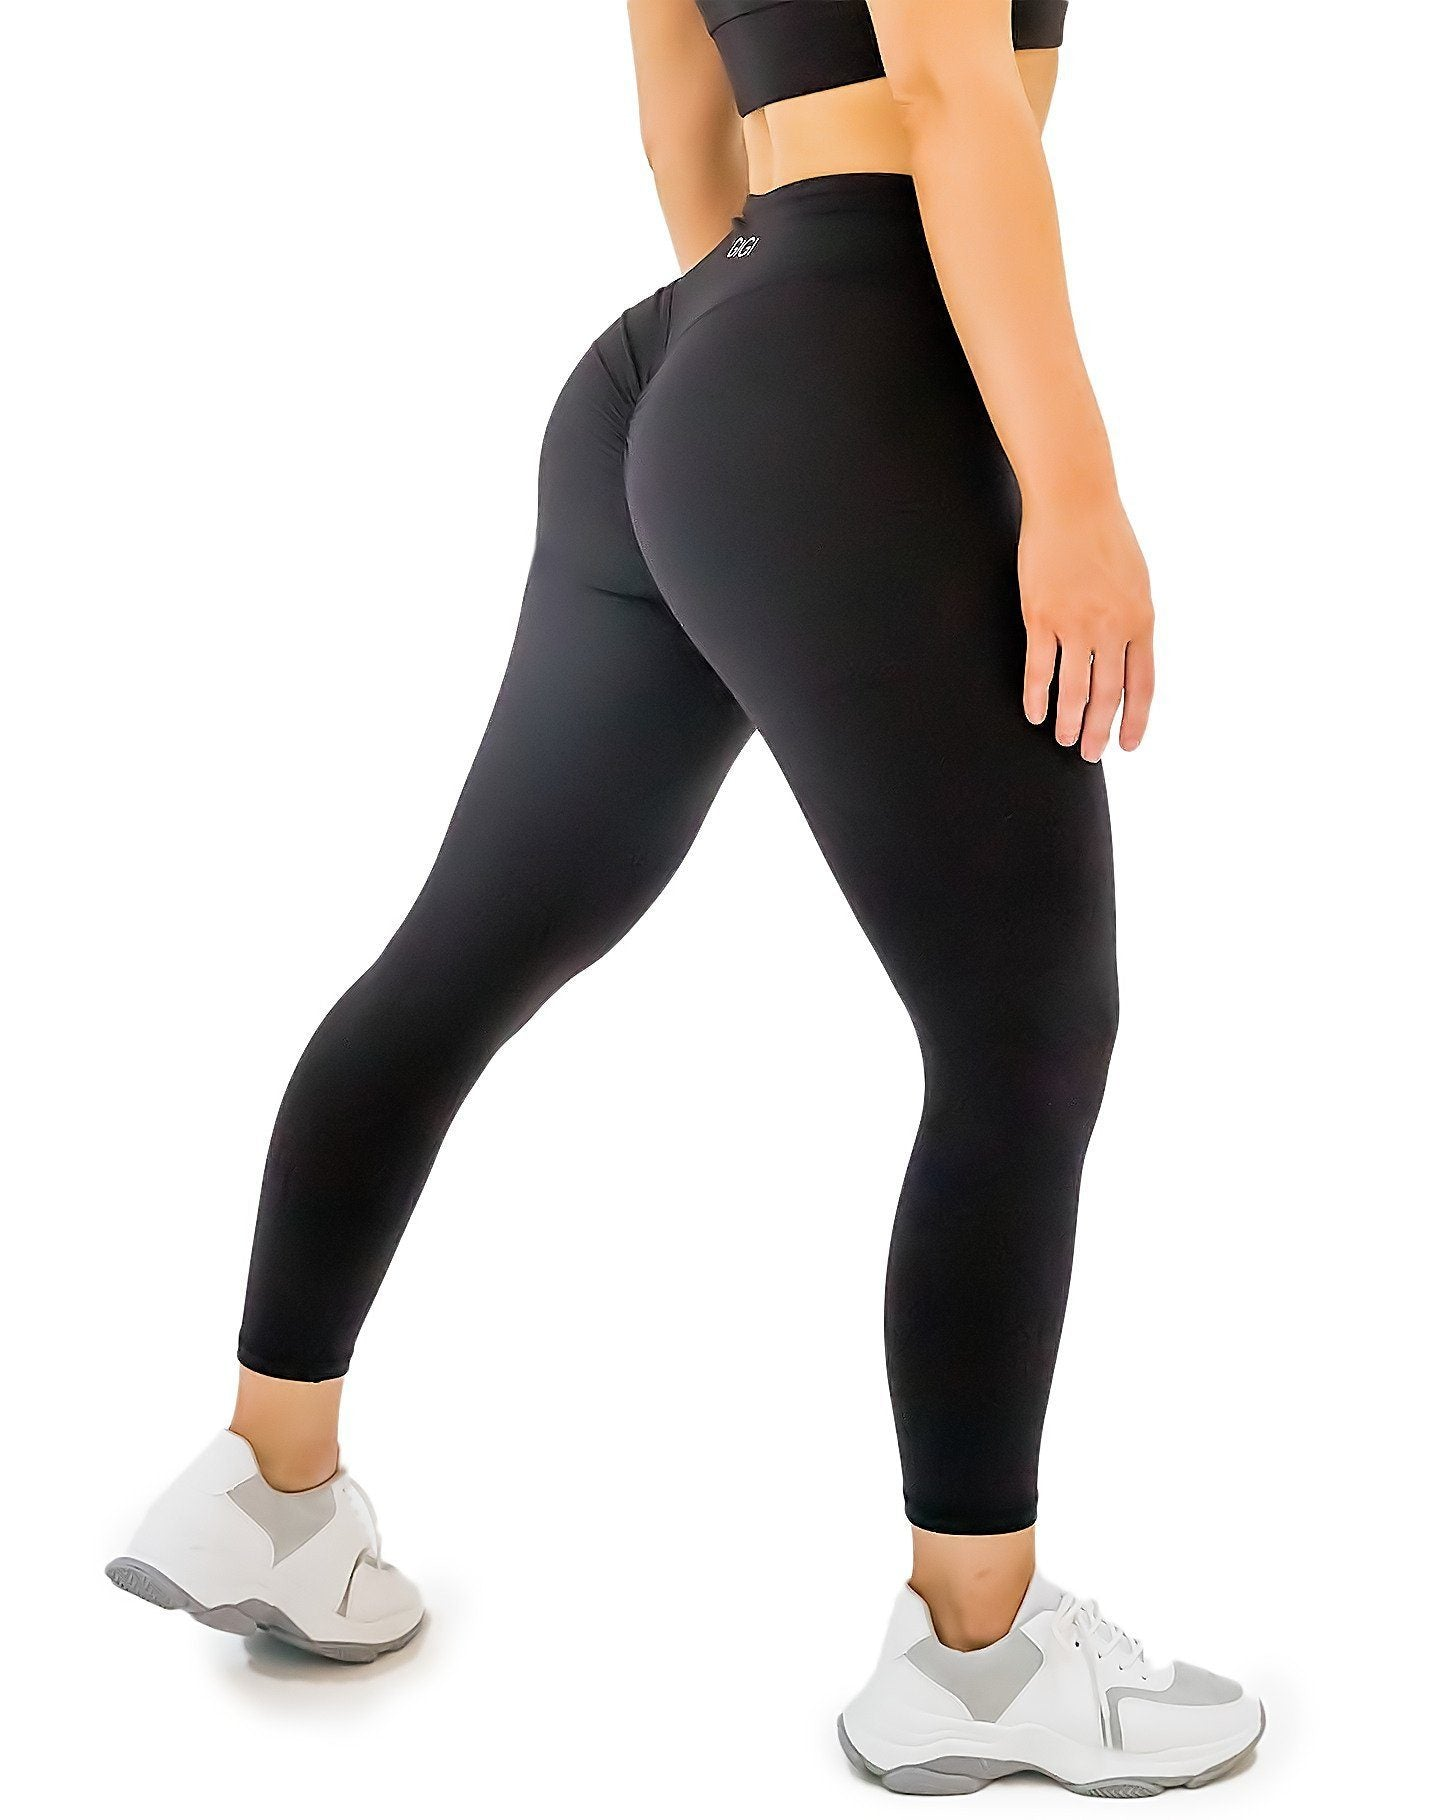 GIGI Line 7/8 Leggings - Black